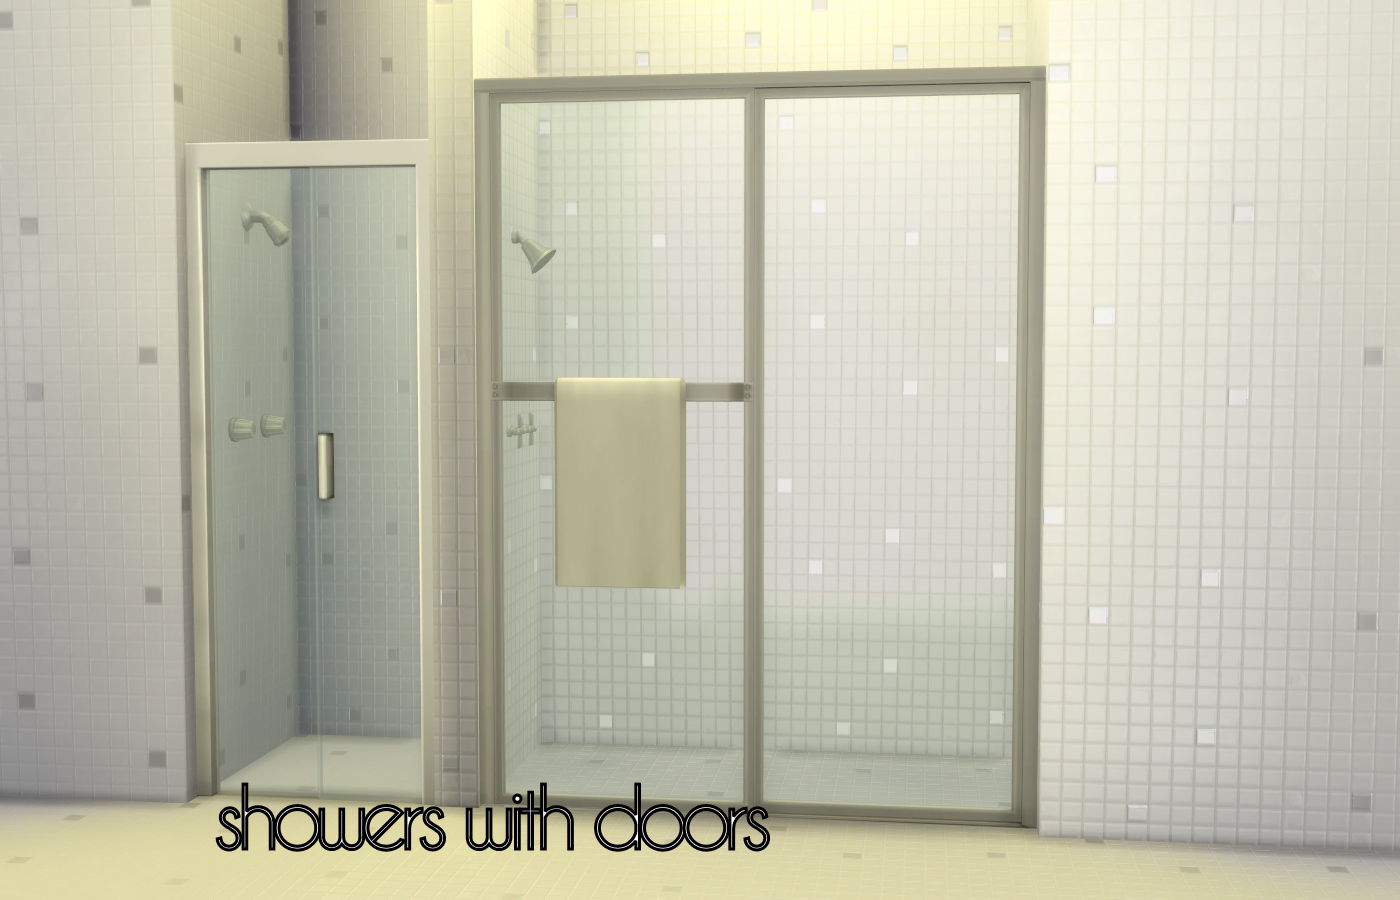 Mod The Sims Build A Shower Kit